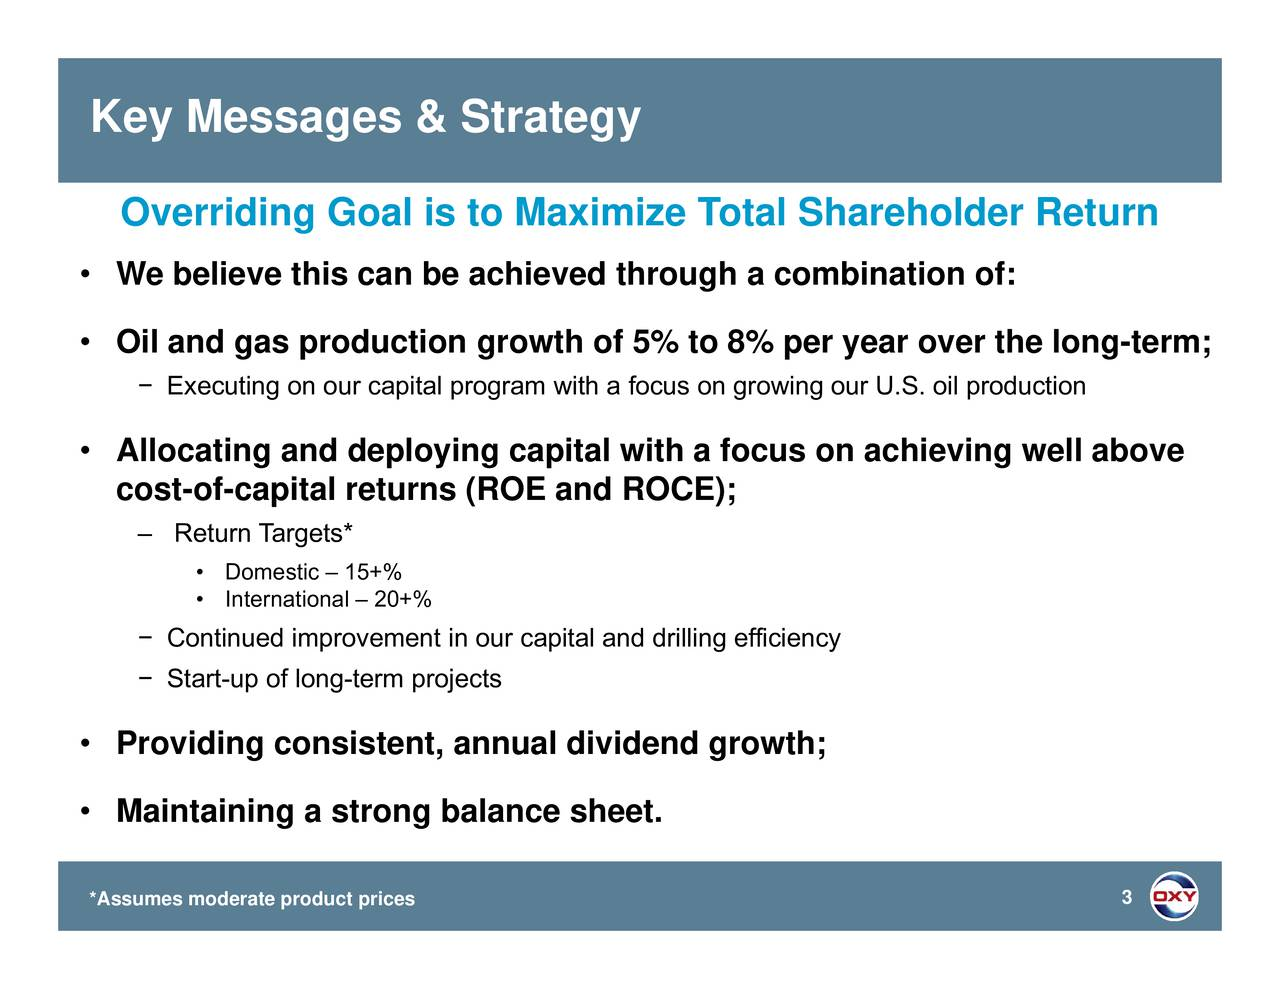 focus on growing our U.S. oil production DoIneiainal 20+% Executing on our aonigr-miofovg-trt noertapital and drilling efficiency ReturTargets* OverWe bOeliandtgloocannbeaaionegrotytvsdi5Otcocosittsnrynun Key Messags &Strateg   *Assumes moderate product prices